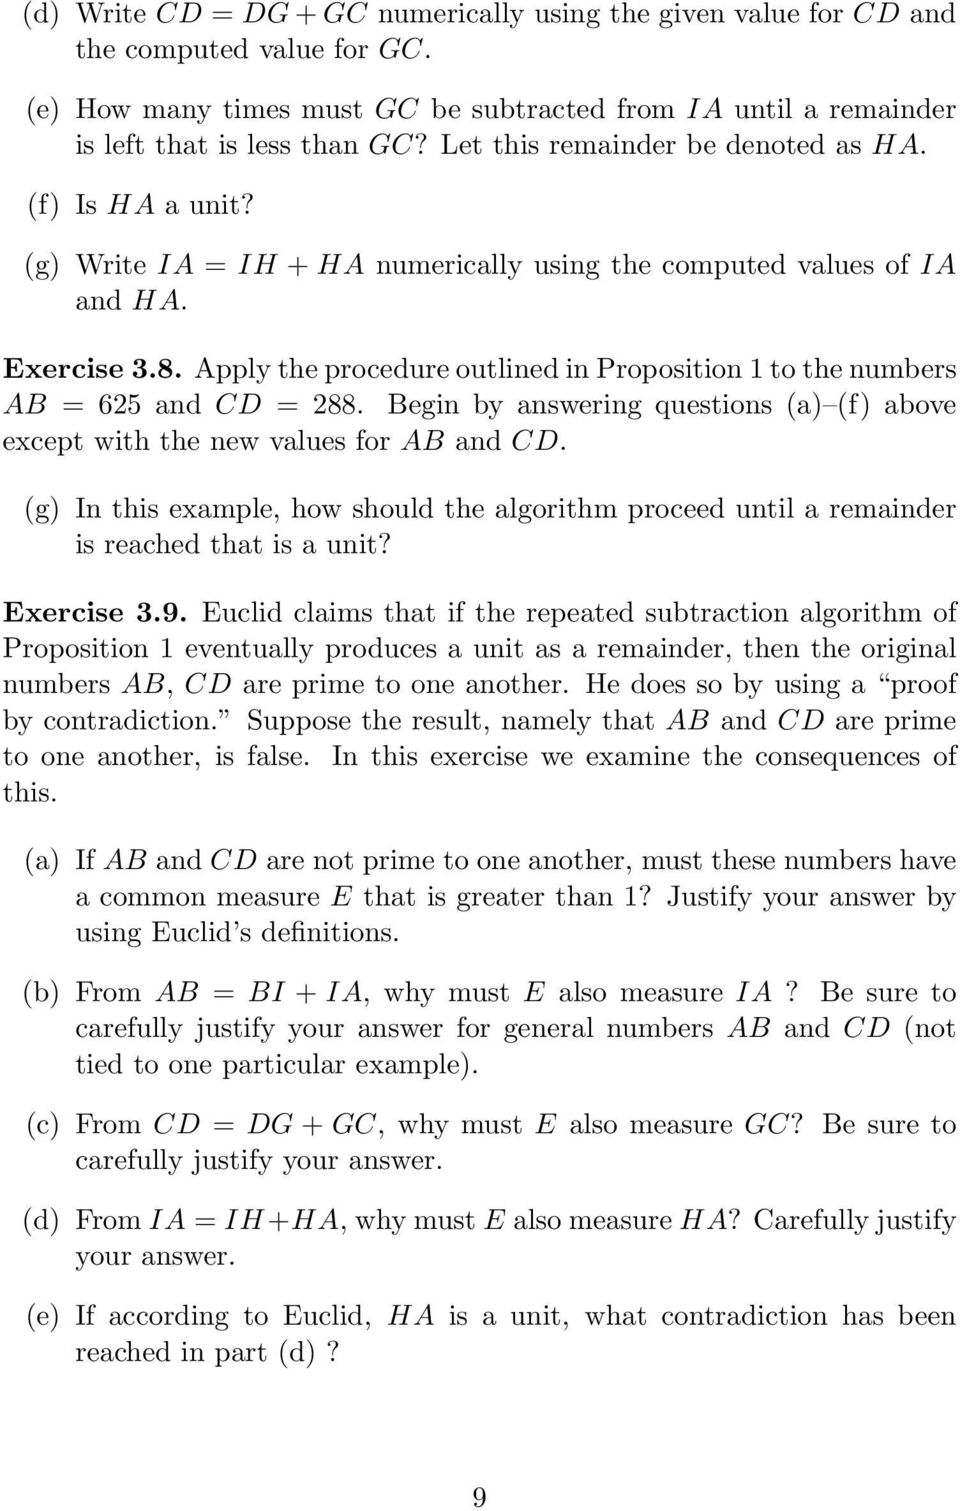 Apply the procedure outlined in Proposition 1 to the numbers AB = 625 and CD = 288. Begin by answering questions (a) (f) above except with the new values for AB and CD.